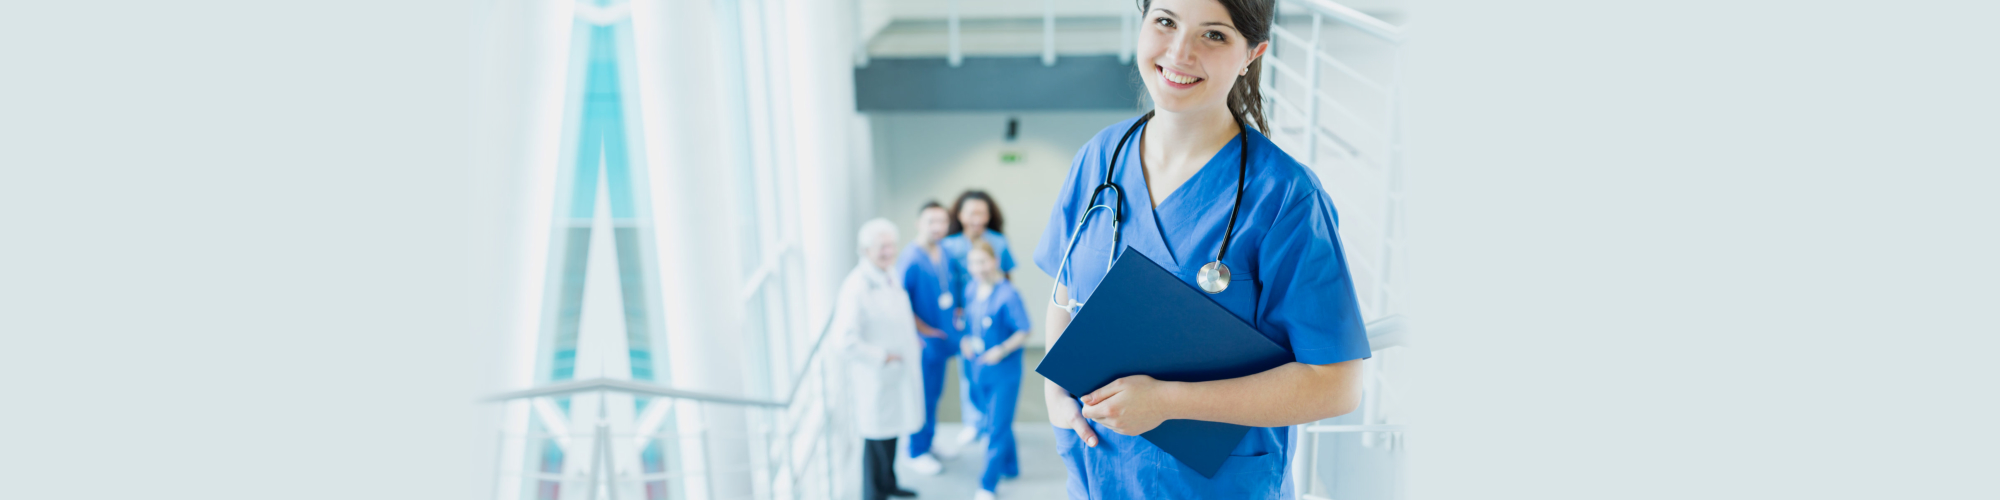 Happy, young woman in blue uniform during medical internship at a hospital